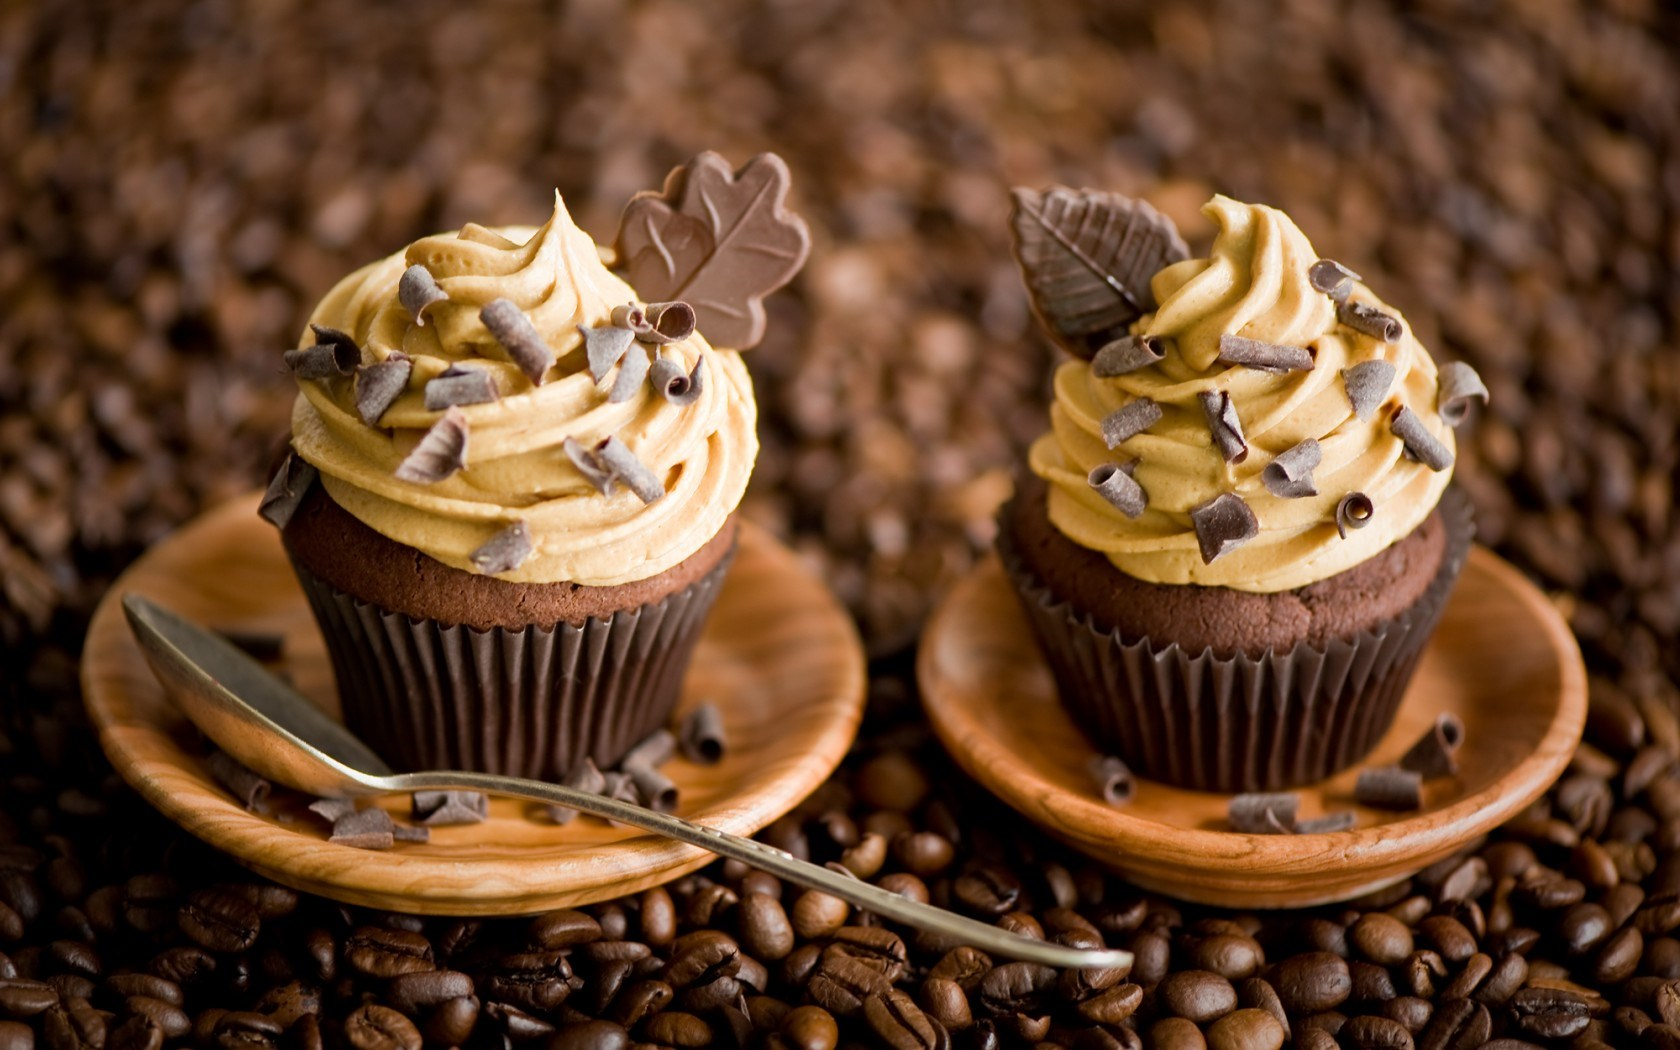 Cupcakes Chocolate Leaves Cream Dessert Coffee